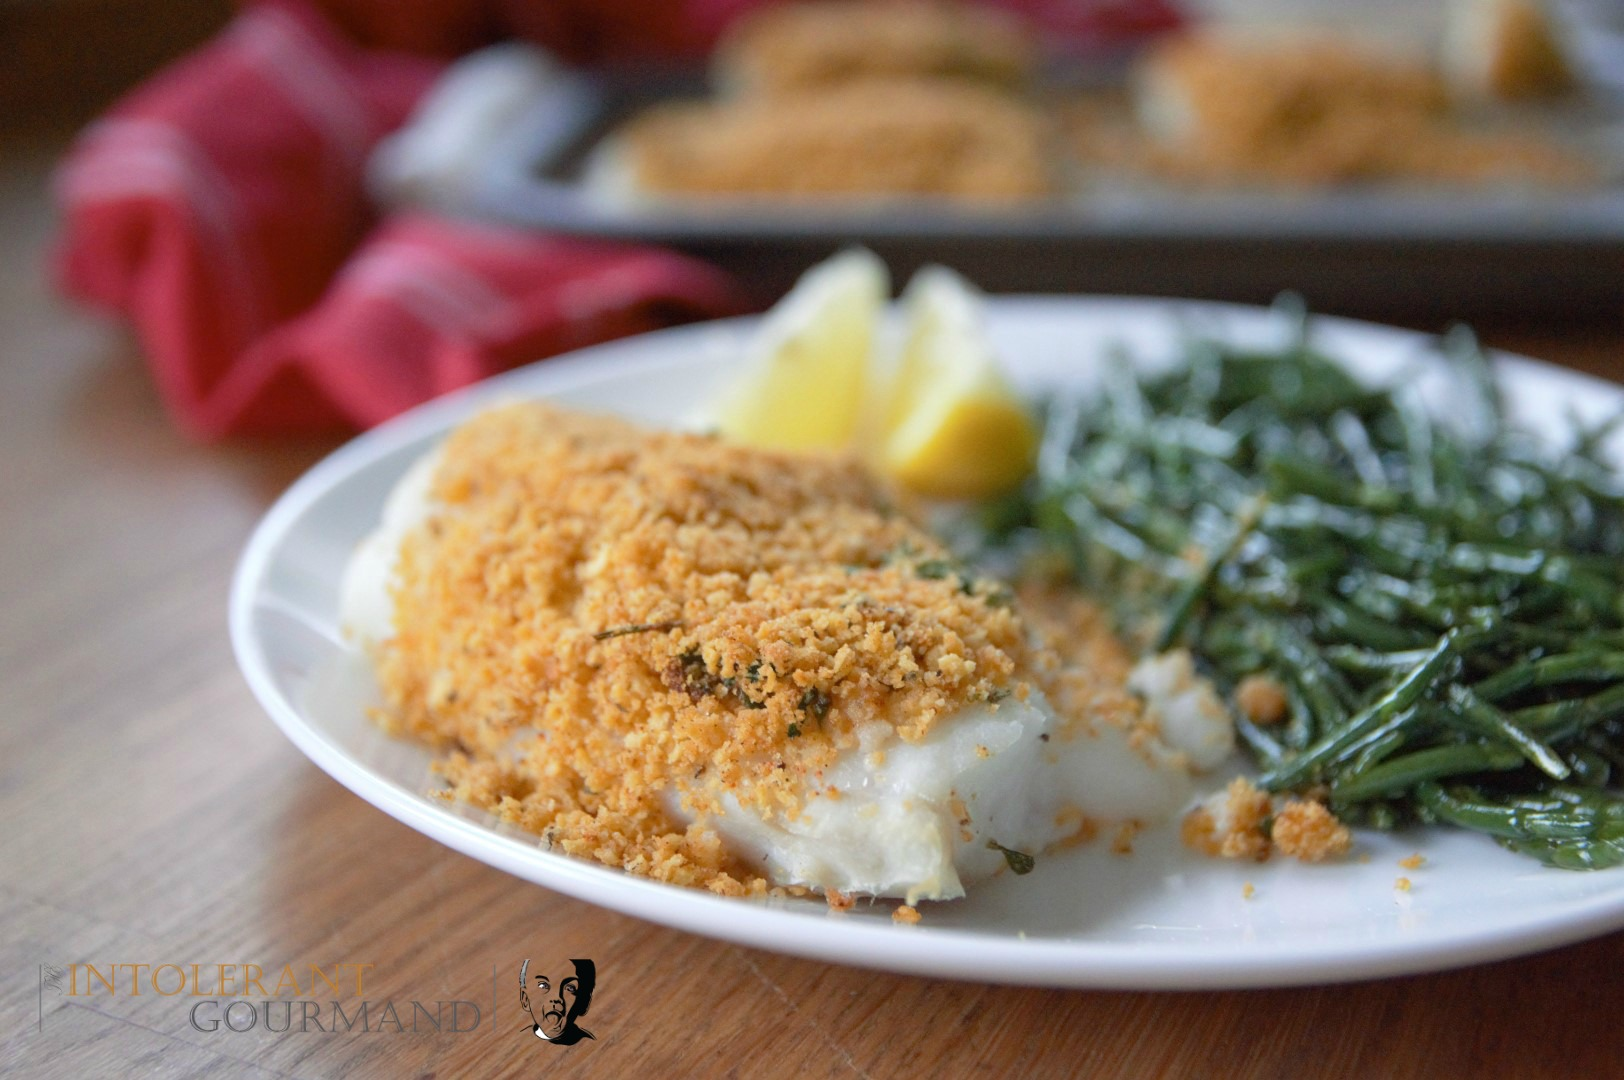 Crumb crusted cod - Stuck for recipe ideas? This deliciously simple meal takes just 30 minutes to make, and is packed full of flavour! It's also gluten-free and perfect for those of you being mindful of IBS symptoms! www.intolerantgourmand.com